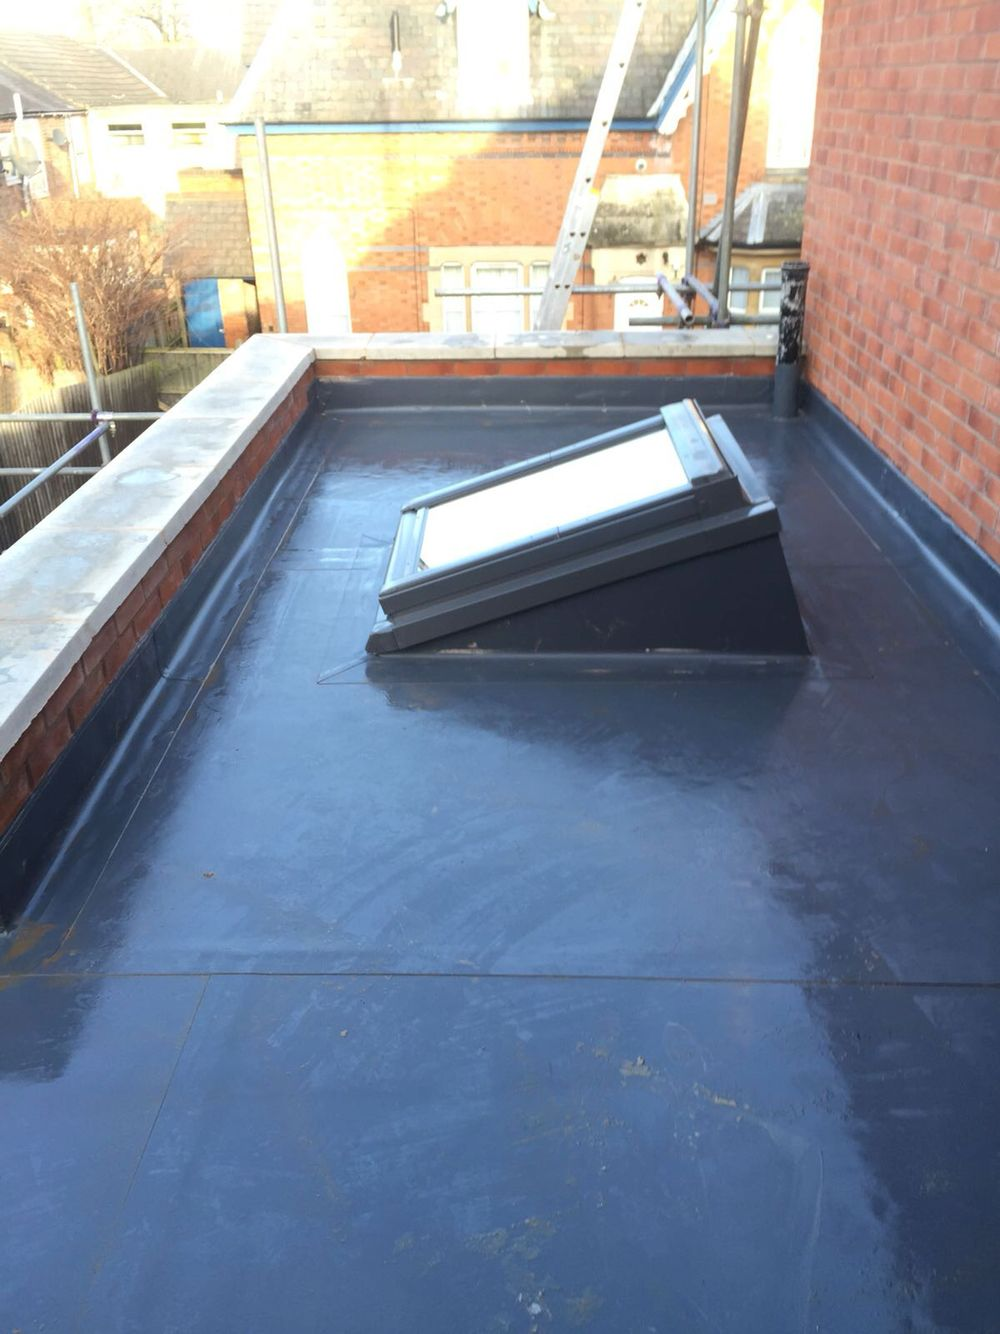 Single Ply Roofing With Skylight On Pentecostal Church In